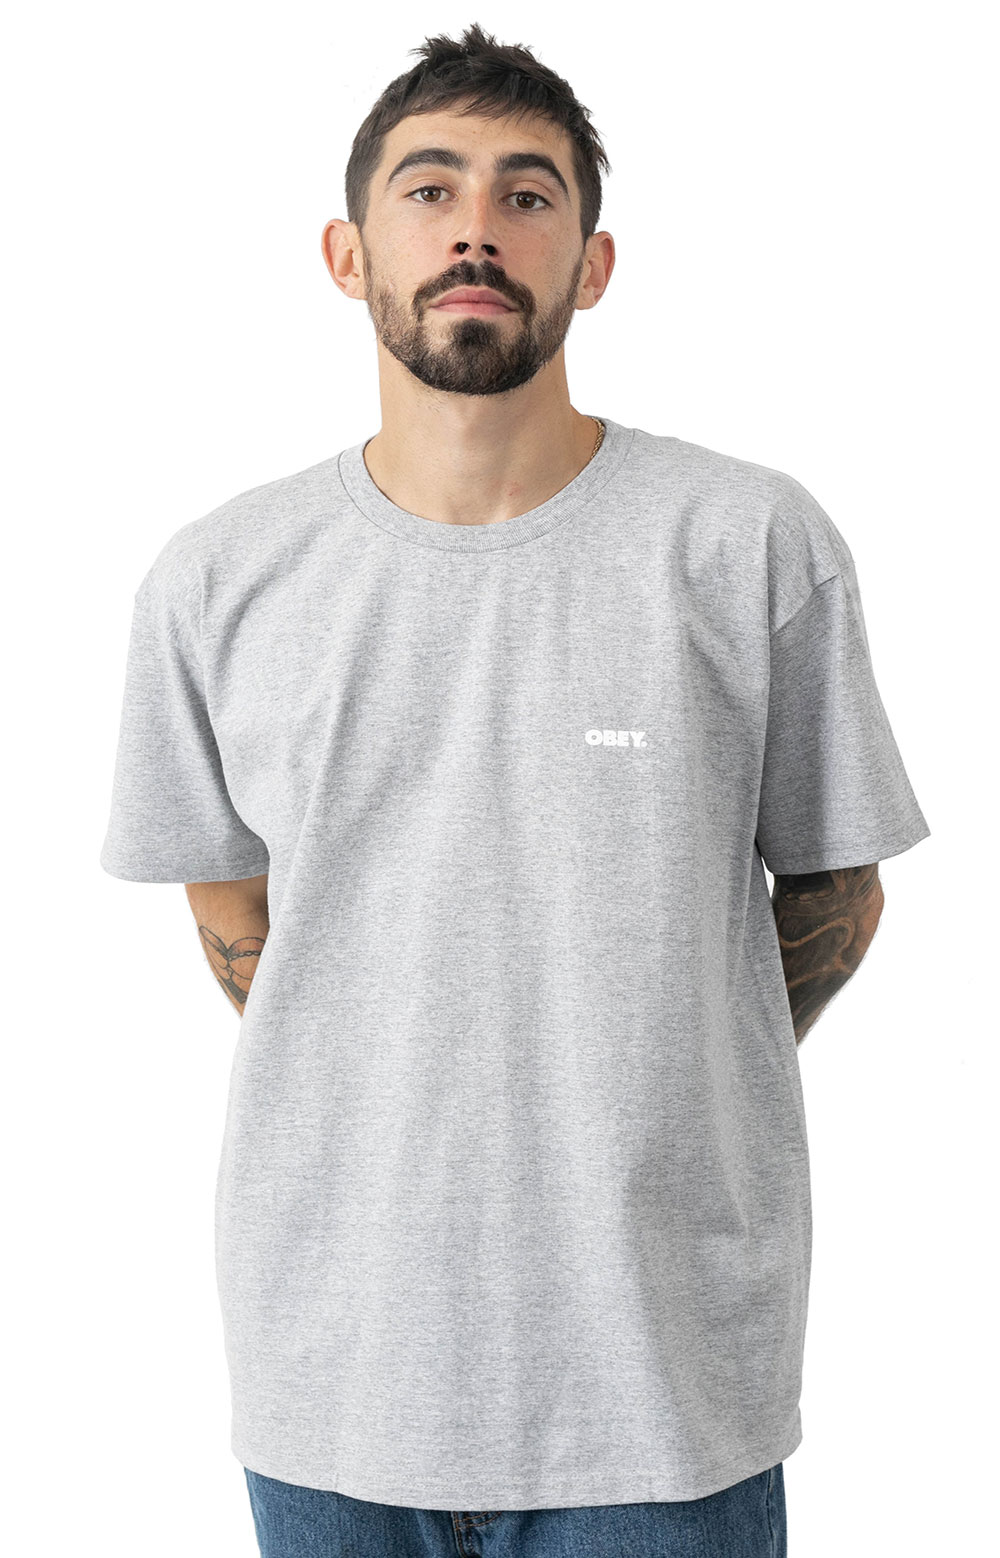 Obey Peace T-Shirt - Heather Grey 2